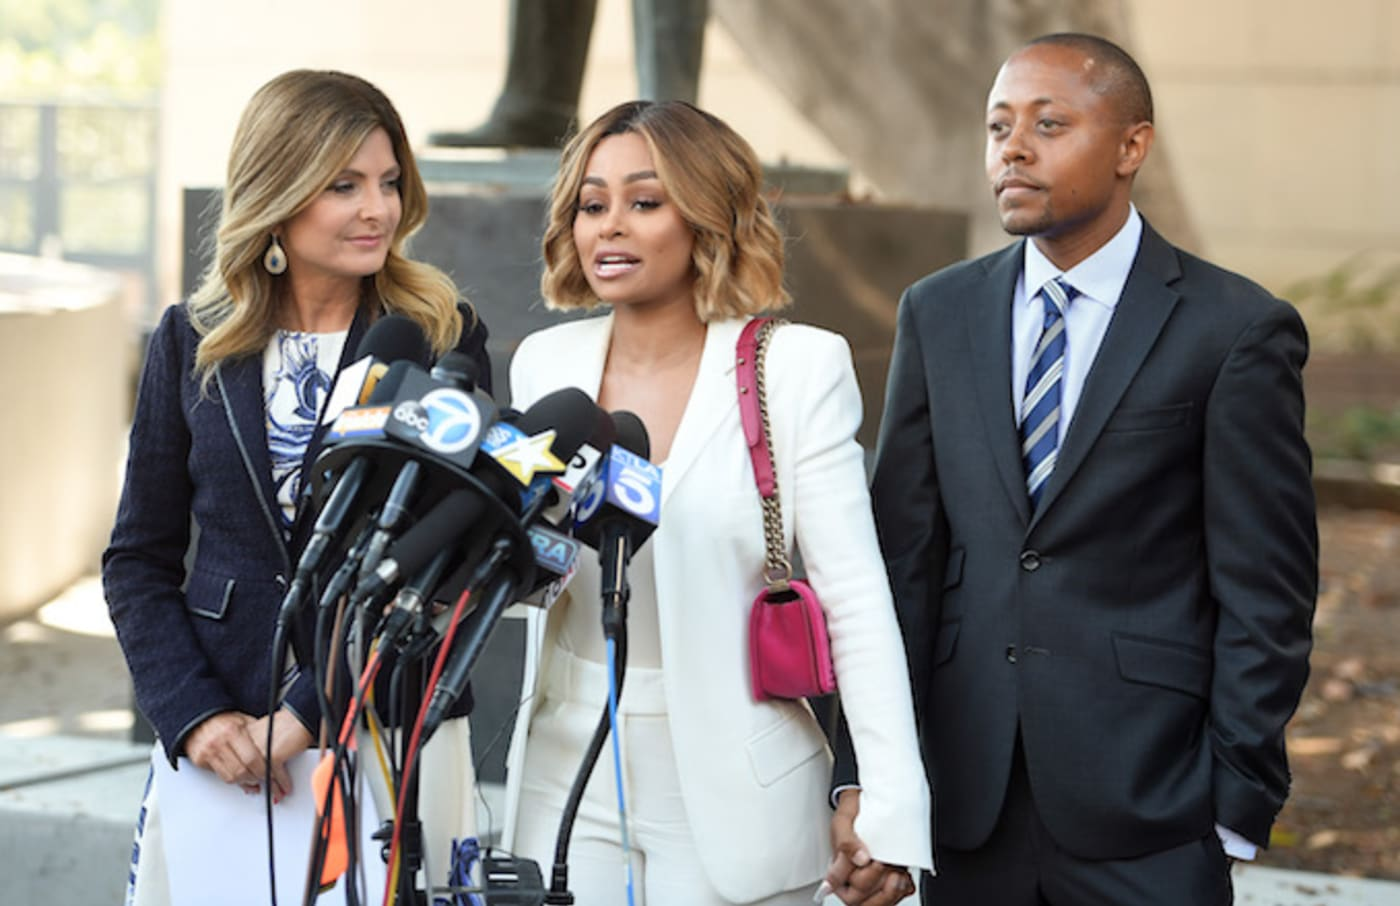 Lisa Bloom, Blac Chyna and Walter Mosley speak during a pre court hearing press conferencr.